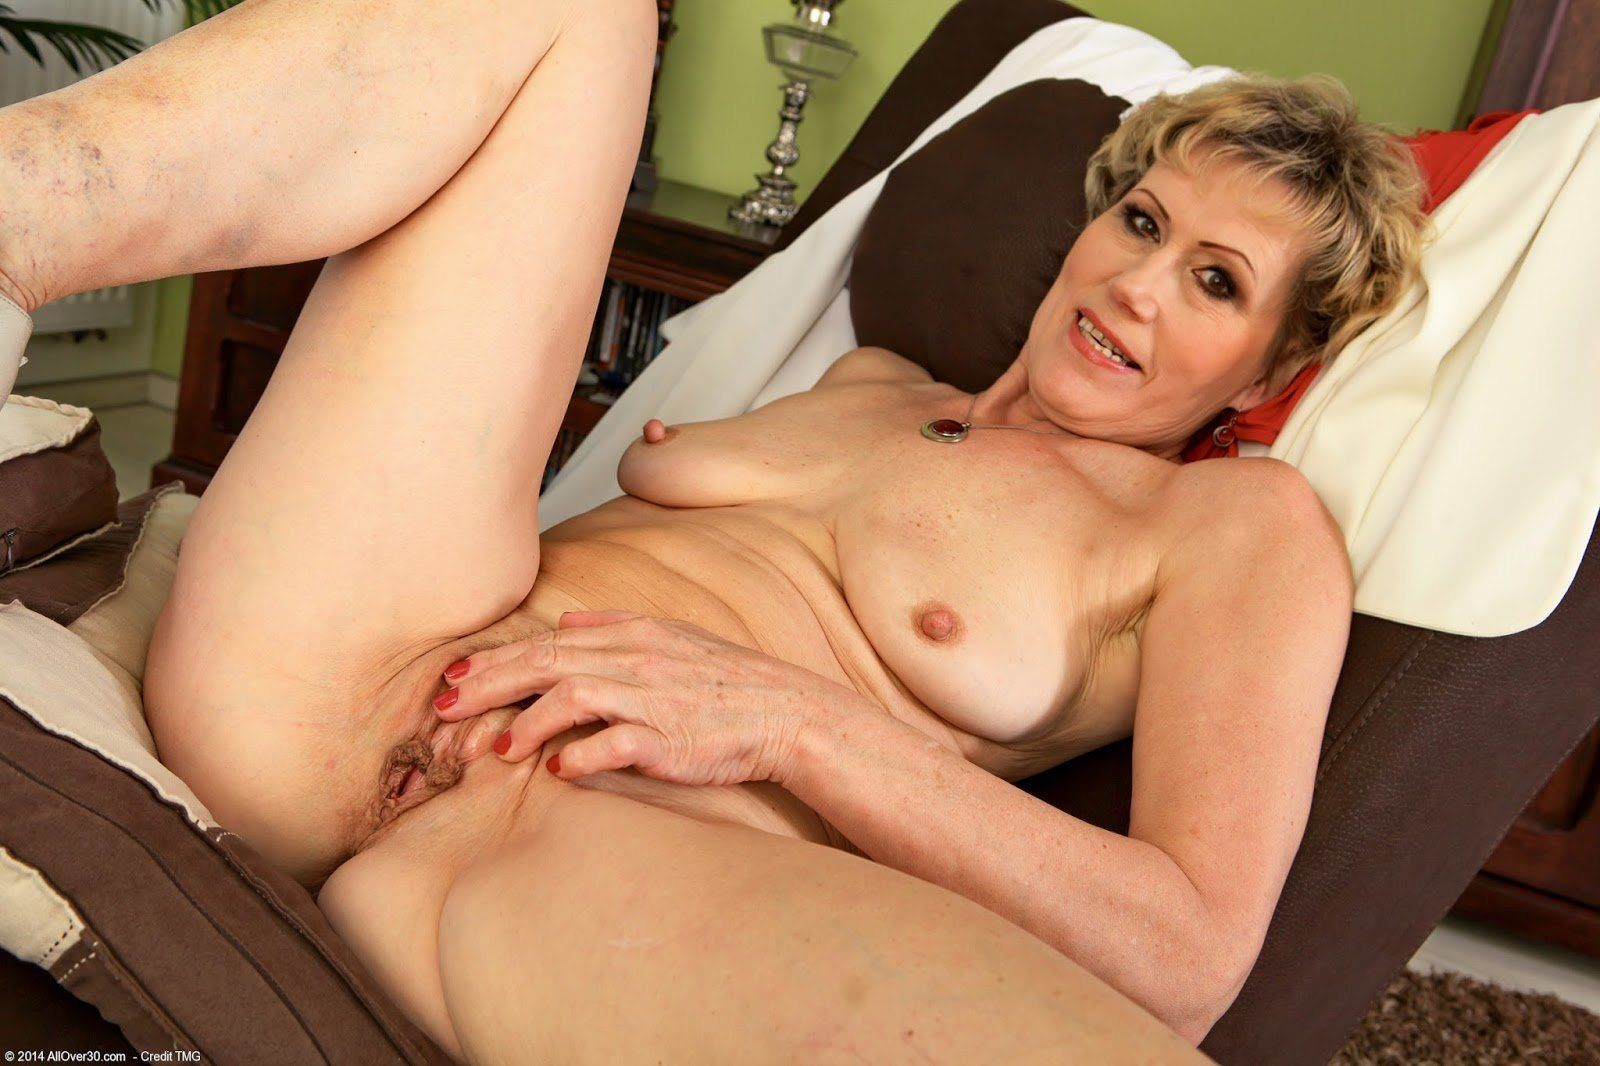 fucking her on her syde